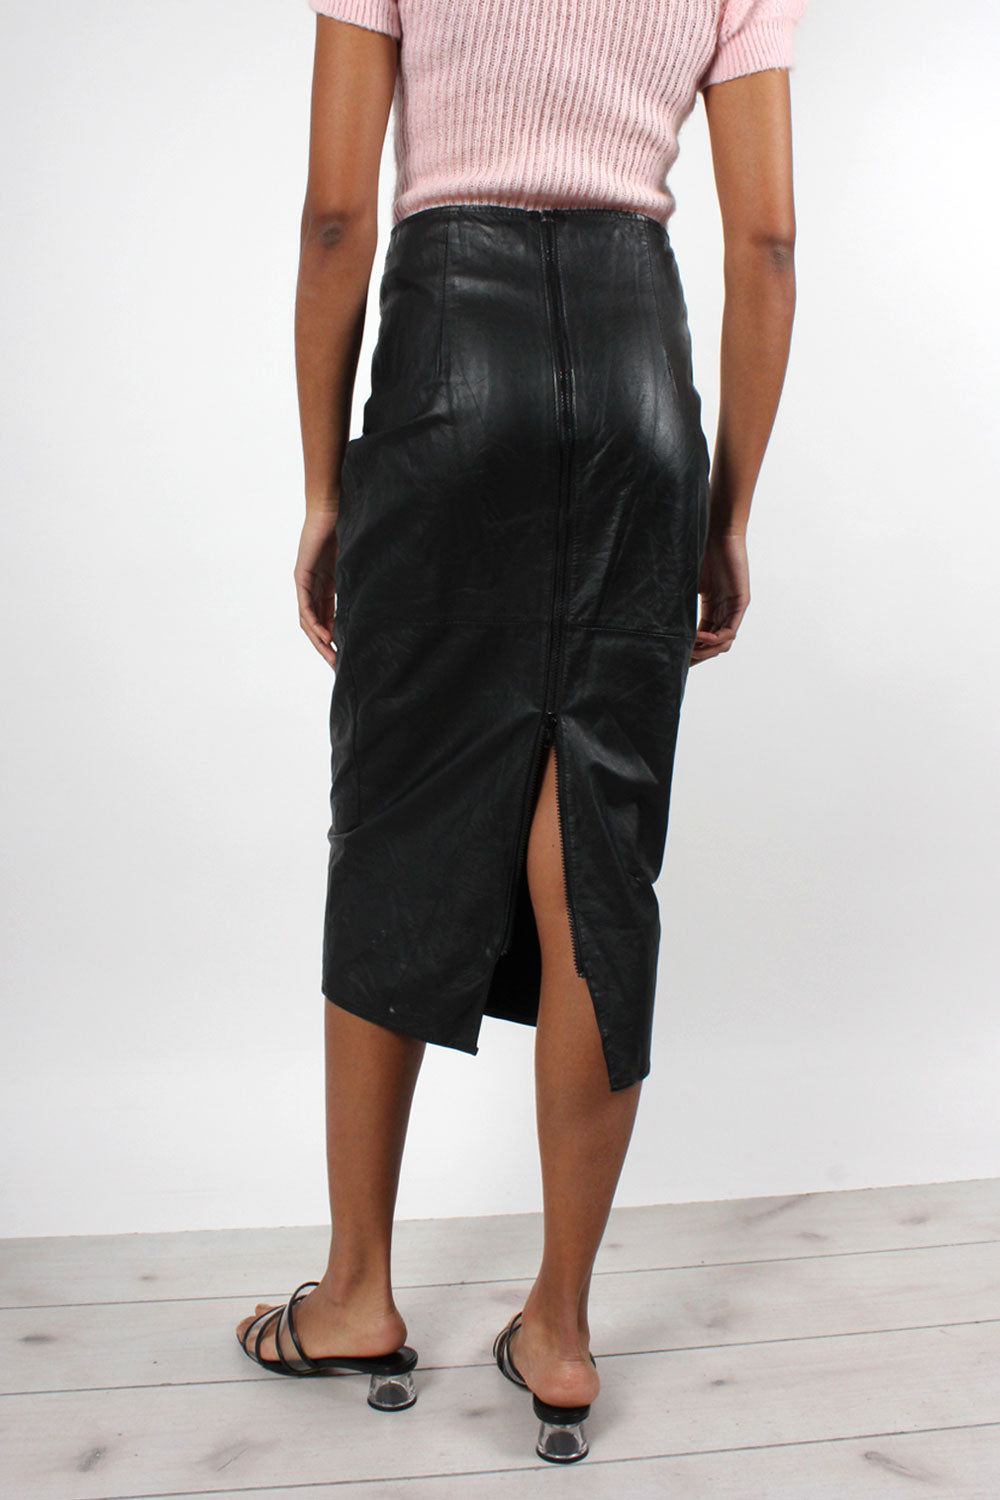 Lace-up Leather Zip Skirt S